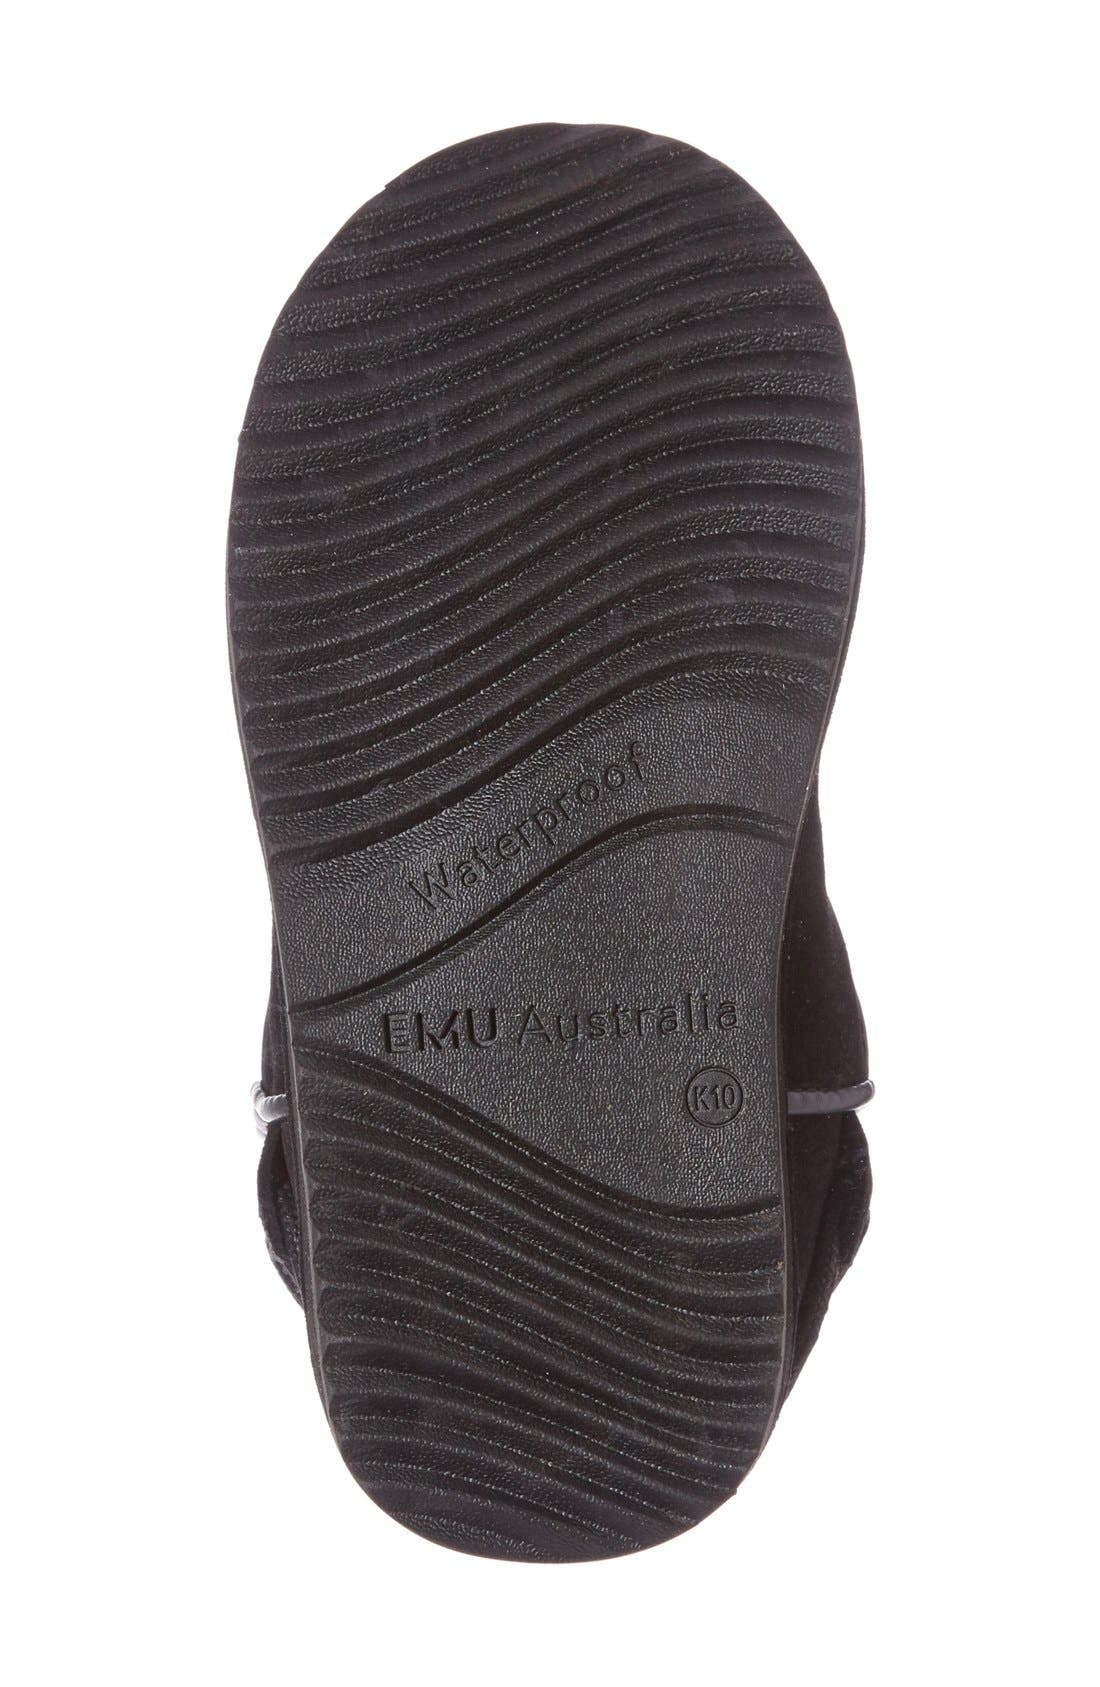 Islay Waterproof Boot,                             Alternate thumbnail 2, color,                             001